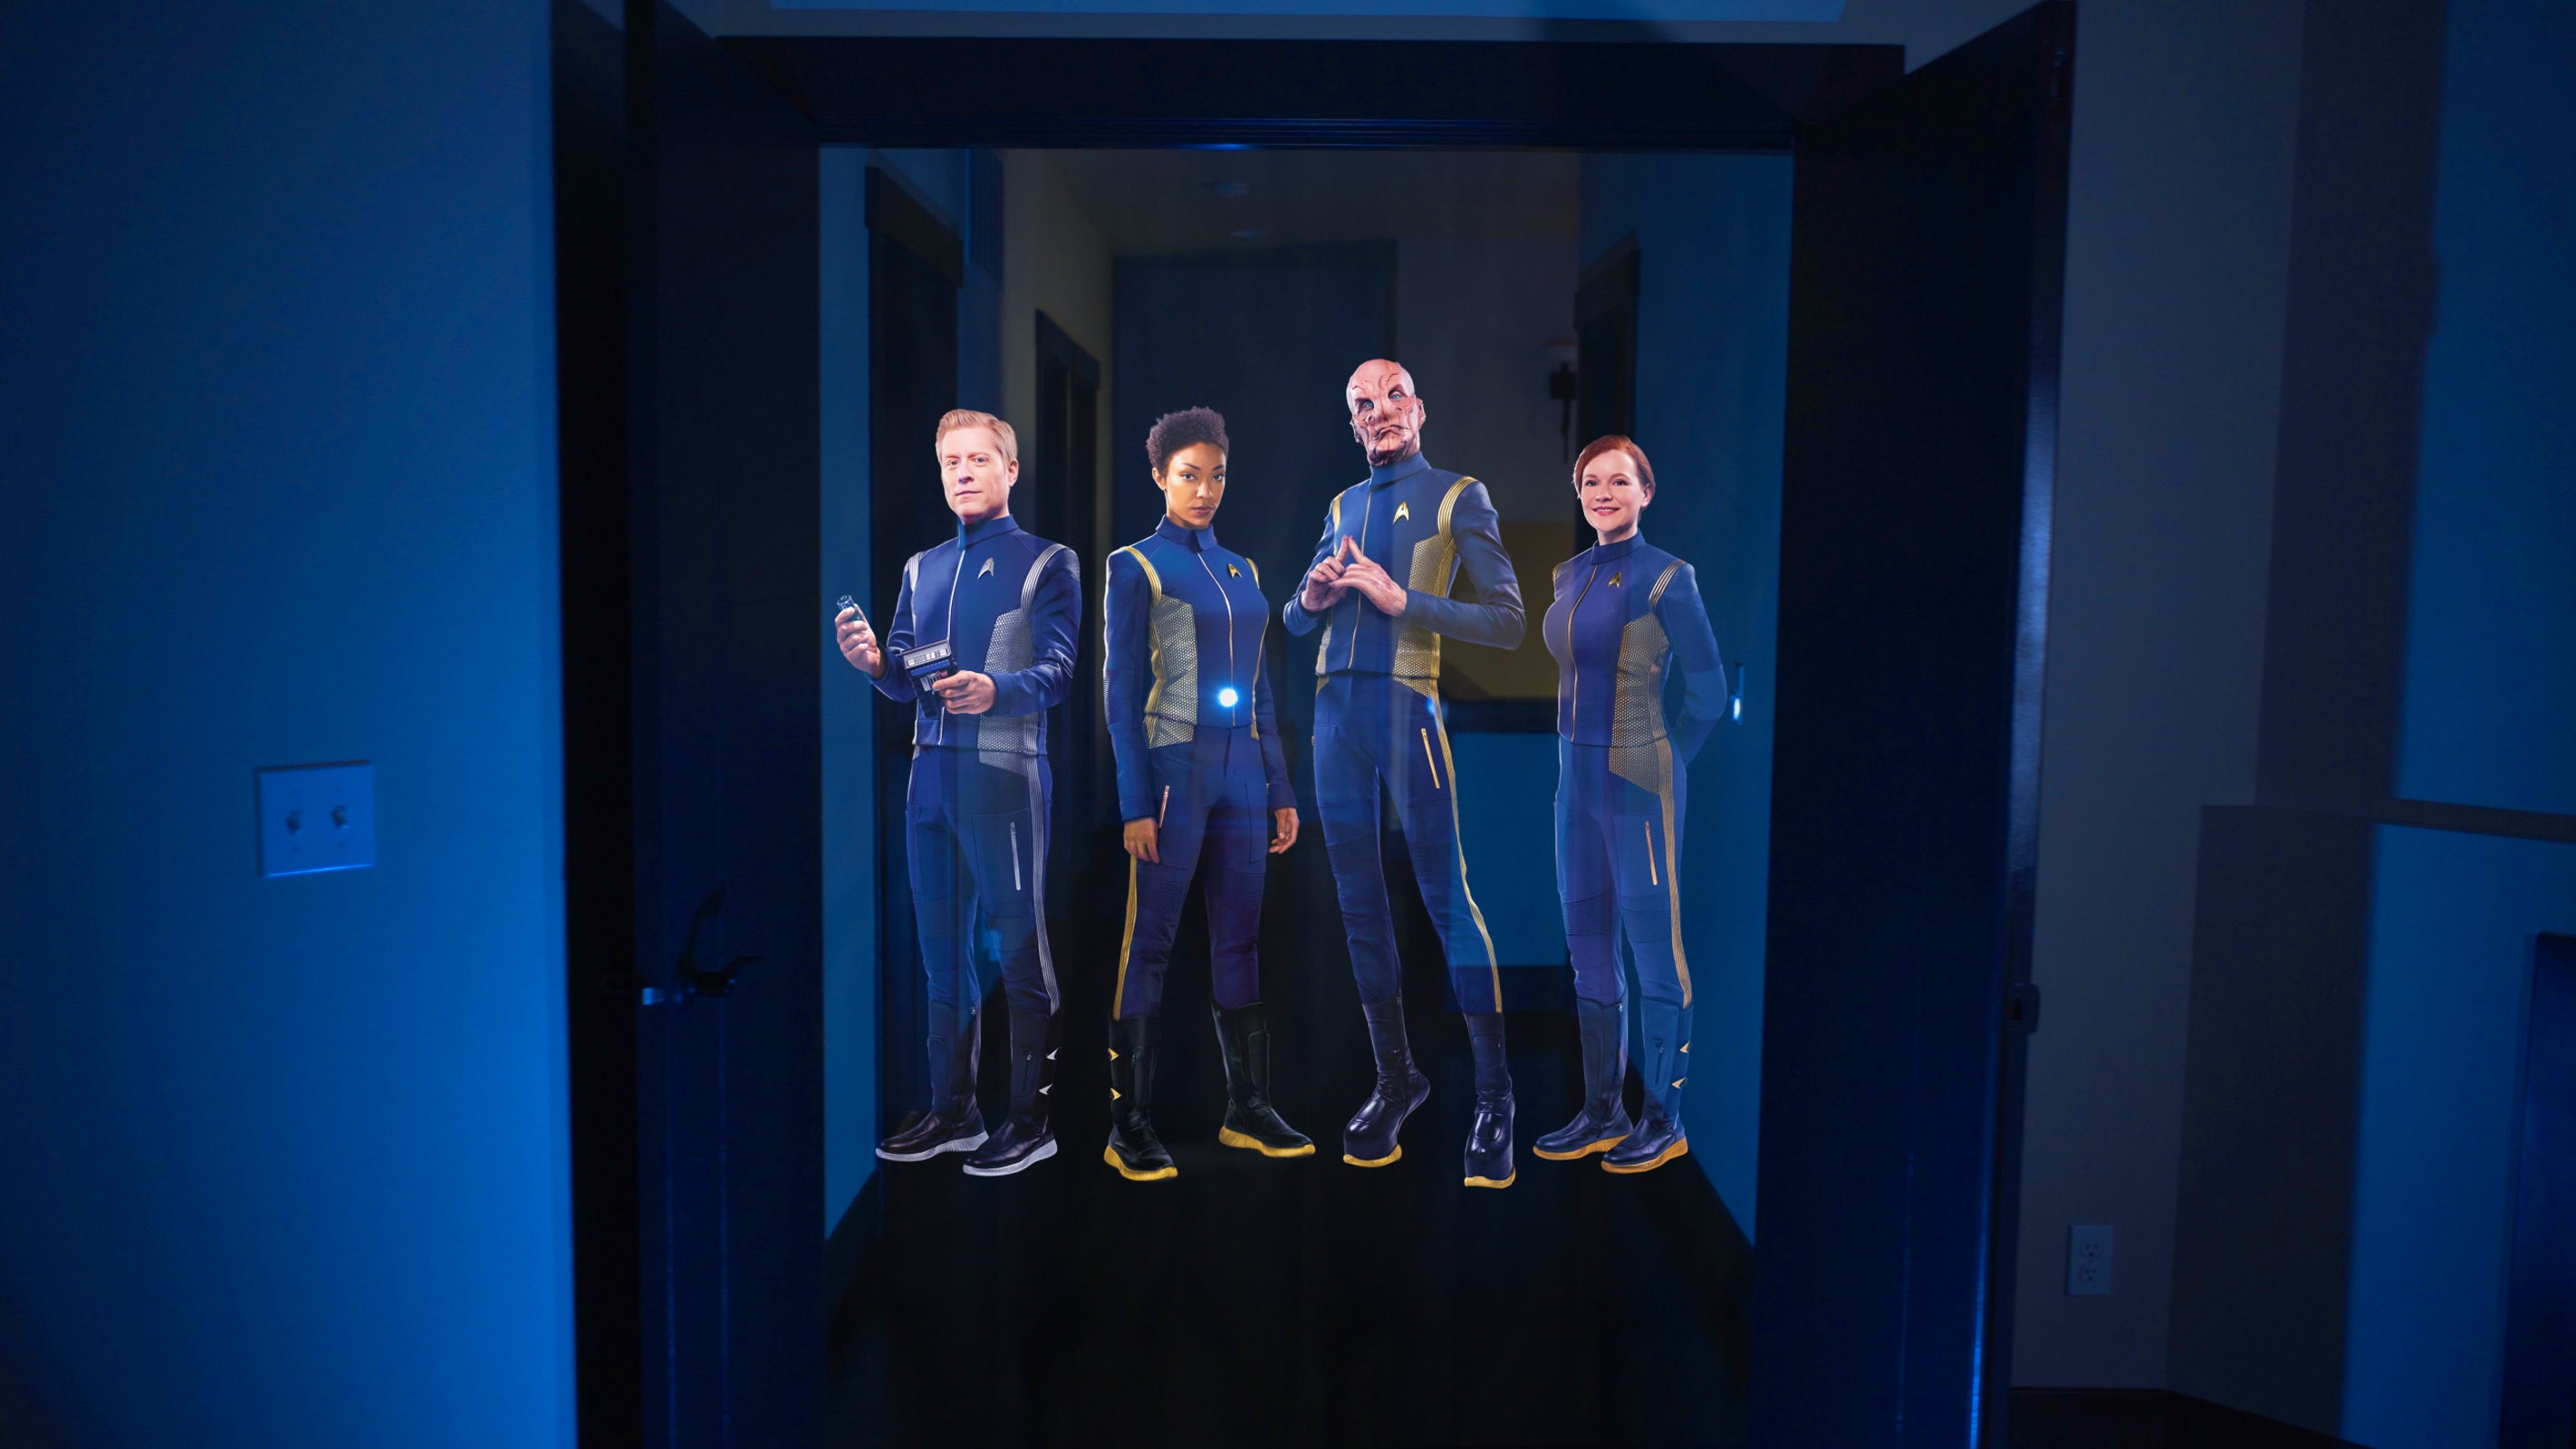 The crew from Discovery appears as a hologram-like illusion in your hallway